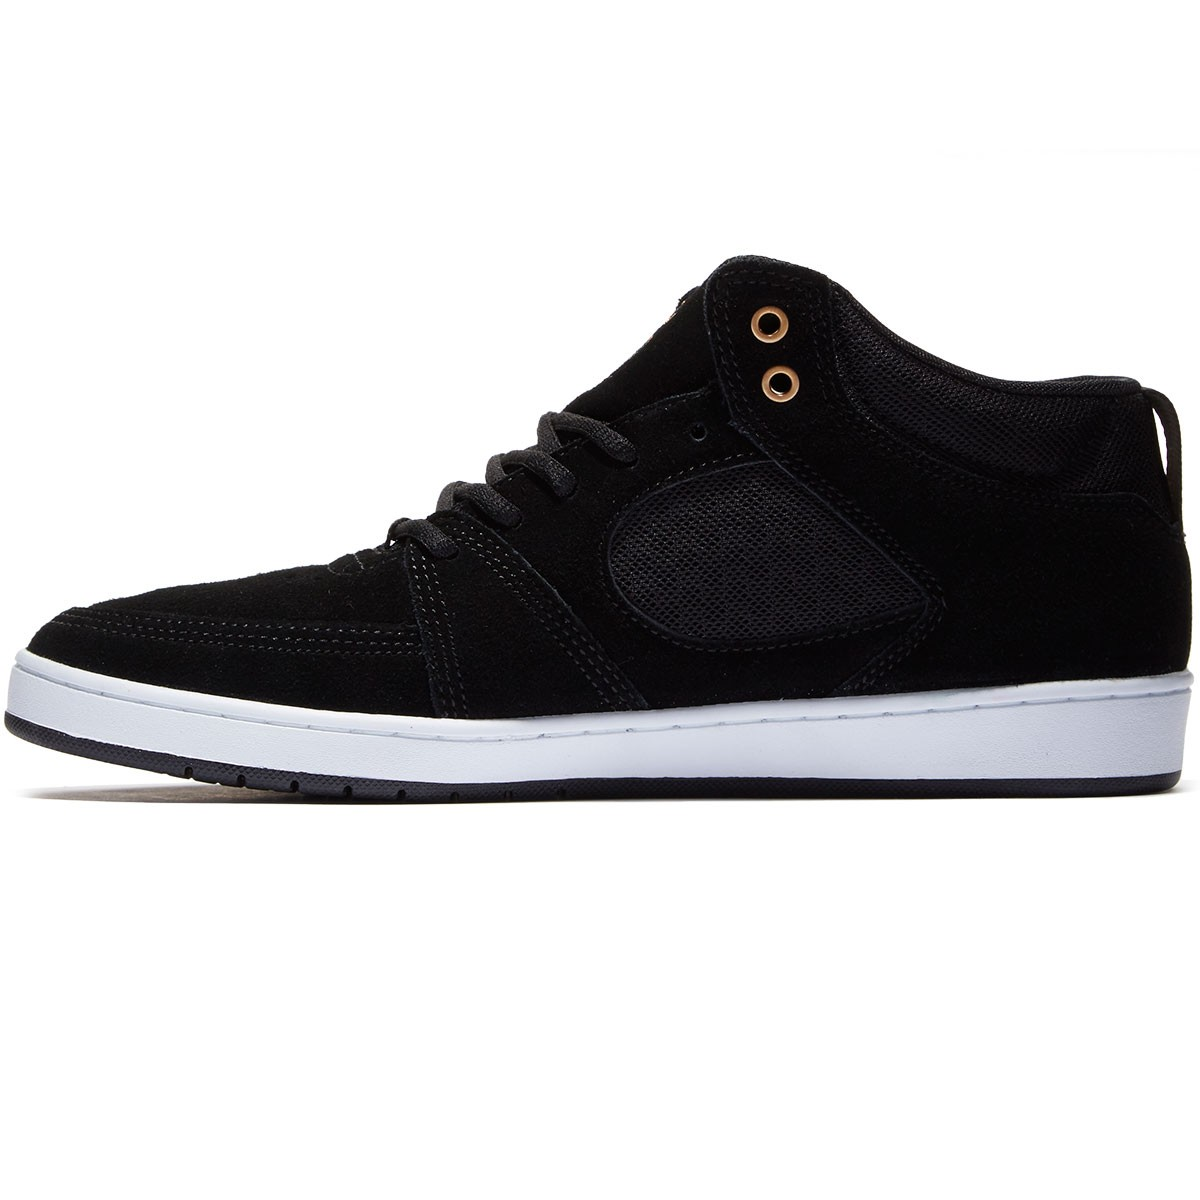 Es Accel Slim Mid Shoes Black White Gum